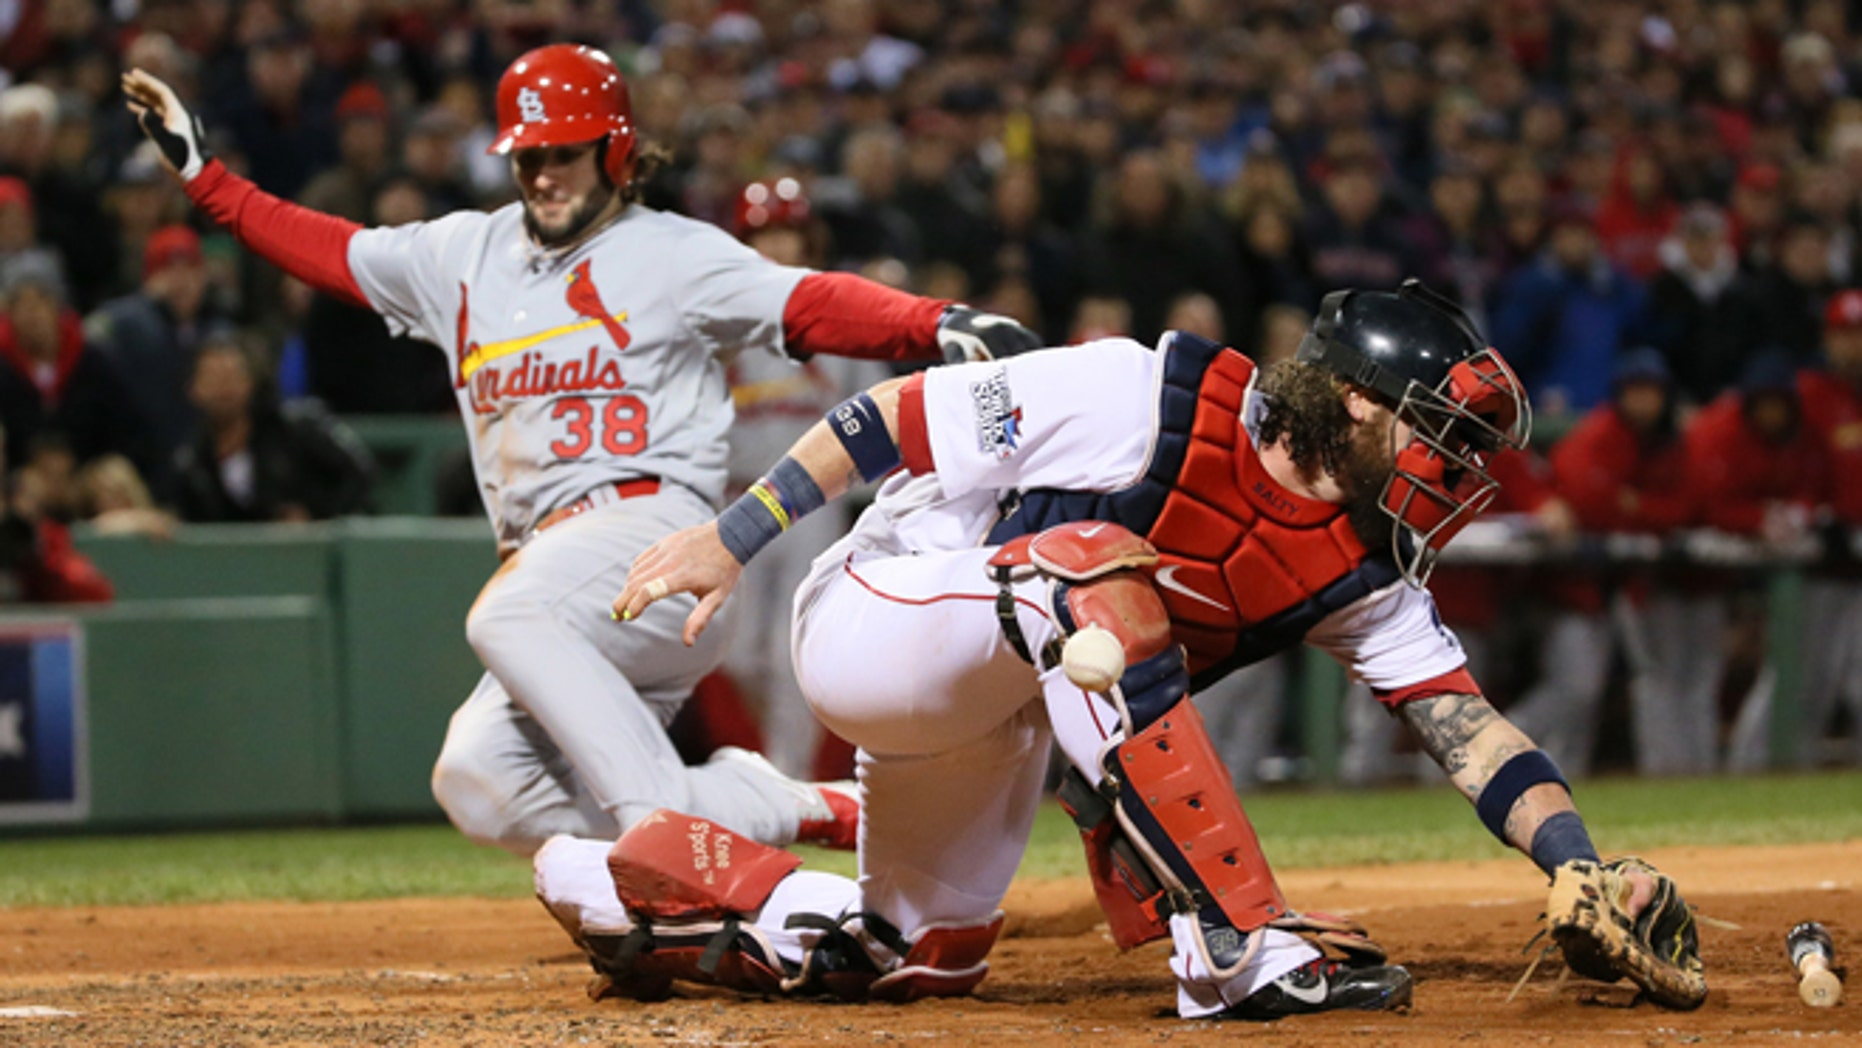 Oct. 24, 2013: Boston Red Sox catcher Jarrod Saltalamacchia is unable to handle the throw from left fielder Jonny Gomes as St. Louis Cardinals pinch runner Pete Kozma scores on a sacrifice fly by Matt Carpenter in the seventh inning during Game 2 of the World Series between the St. Louis Cardinals and the Boston Red Sox at Fenway Park in Boston. Pitcher Craig Breslow backing up the play threw wildly to third for an error, allowing Jon Jay to also score on the play. (AP/St. Louis Post-Dispatch, Chris Lee)